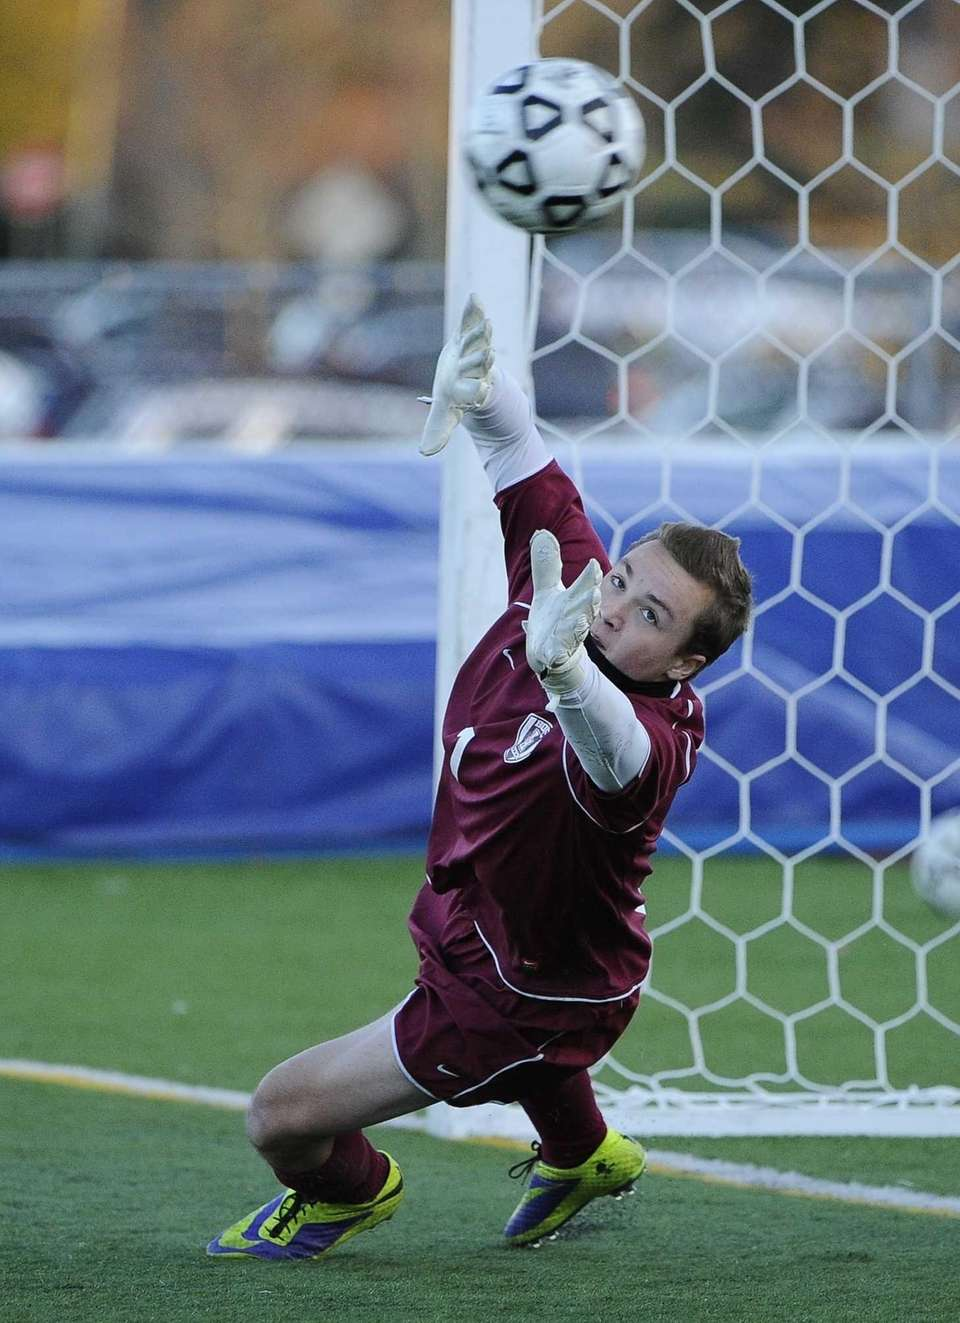 East Hampton goalkeeper Nick Tulp reaches for the